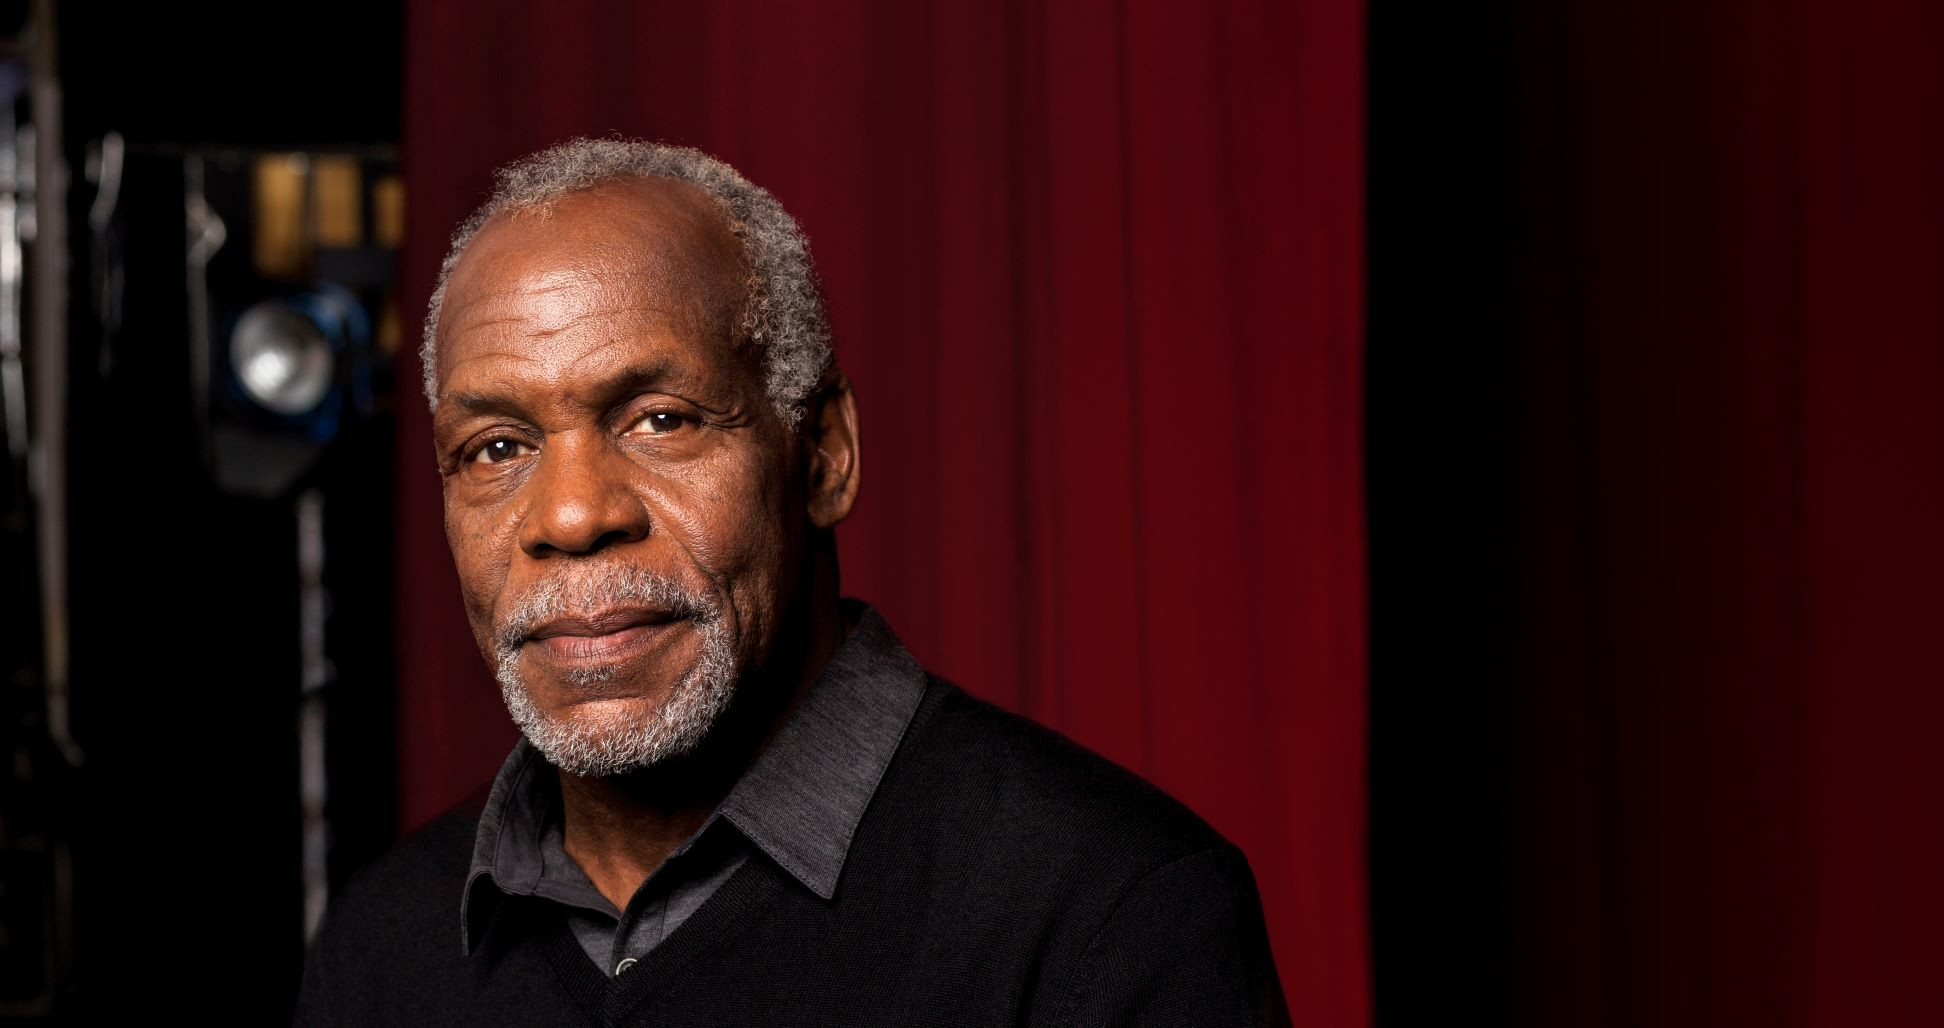 Fórum do Futuro DannyGlover_semcreditosA.jpg